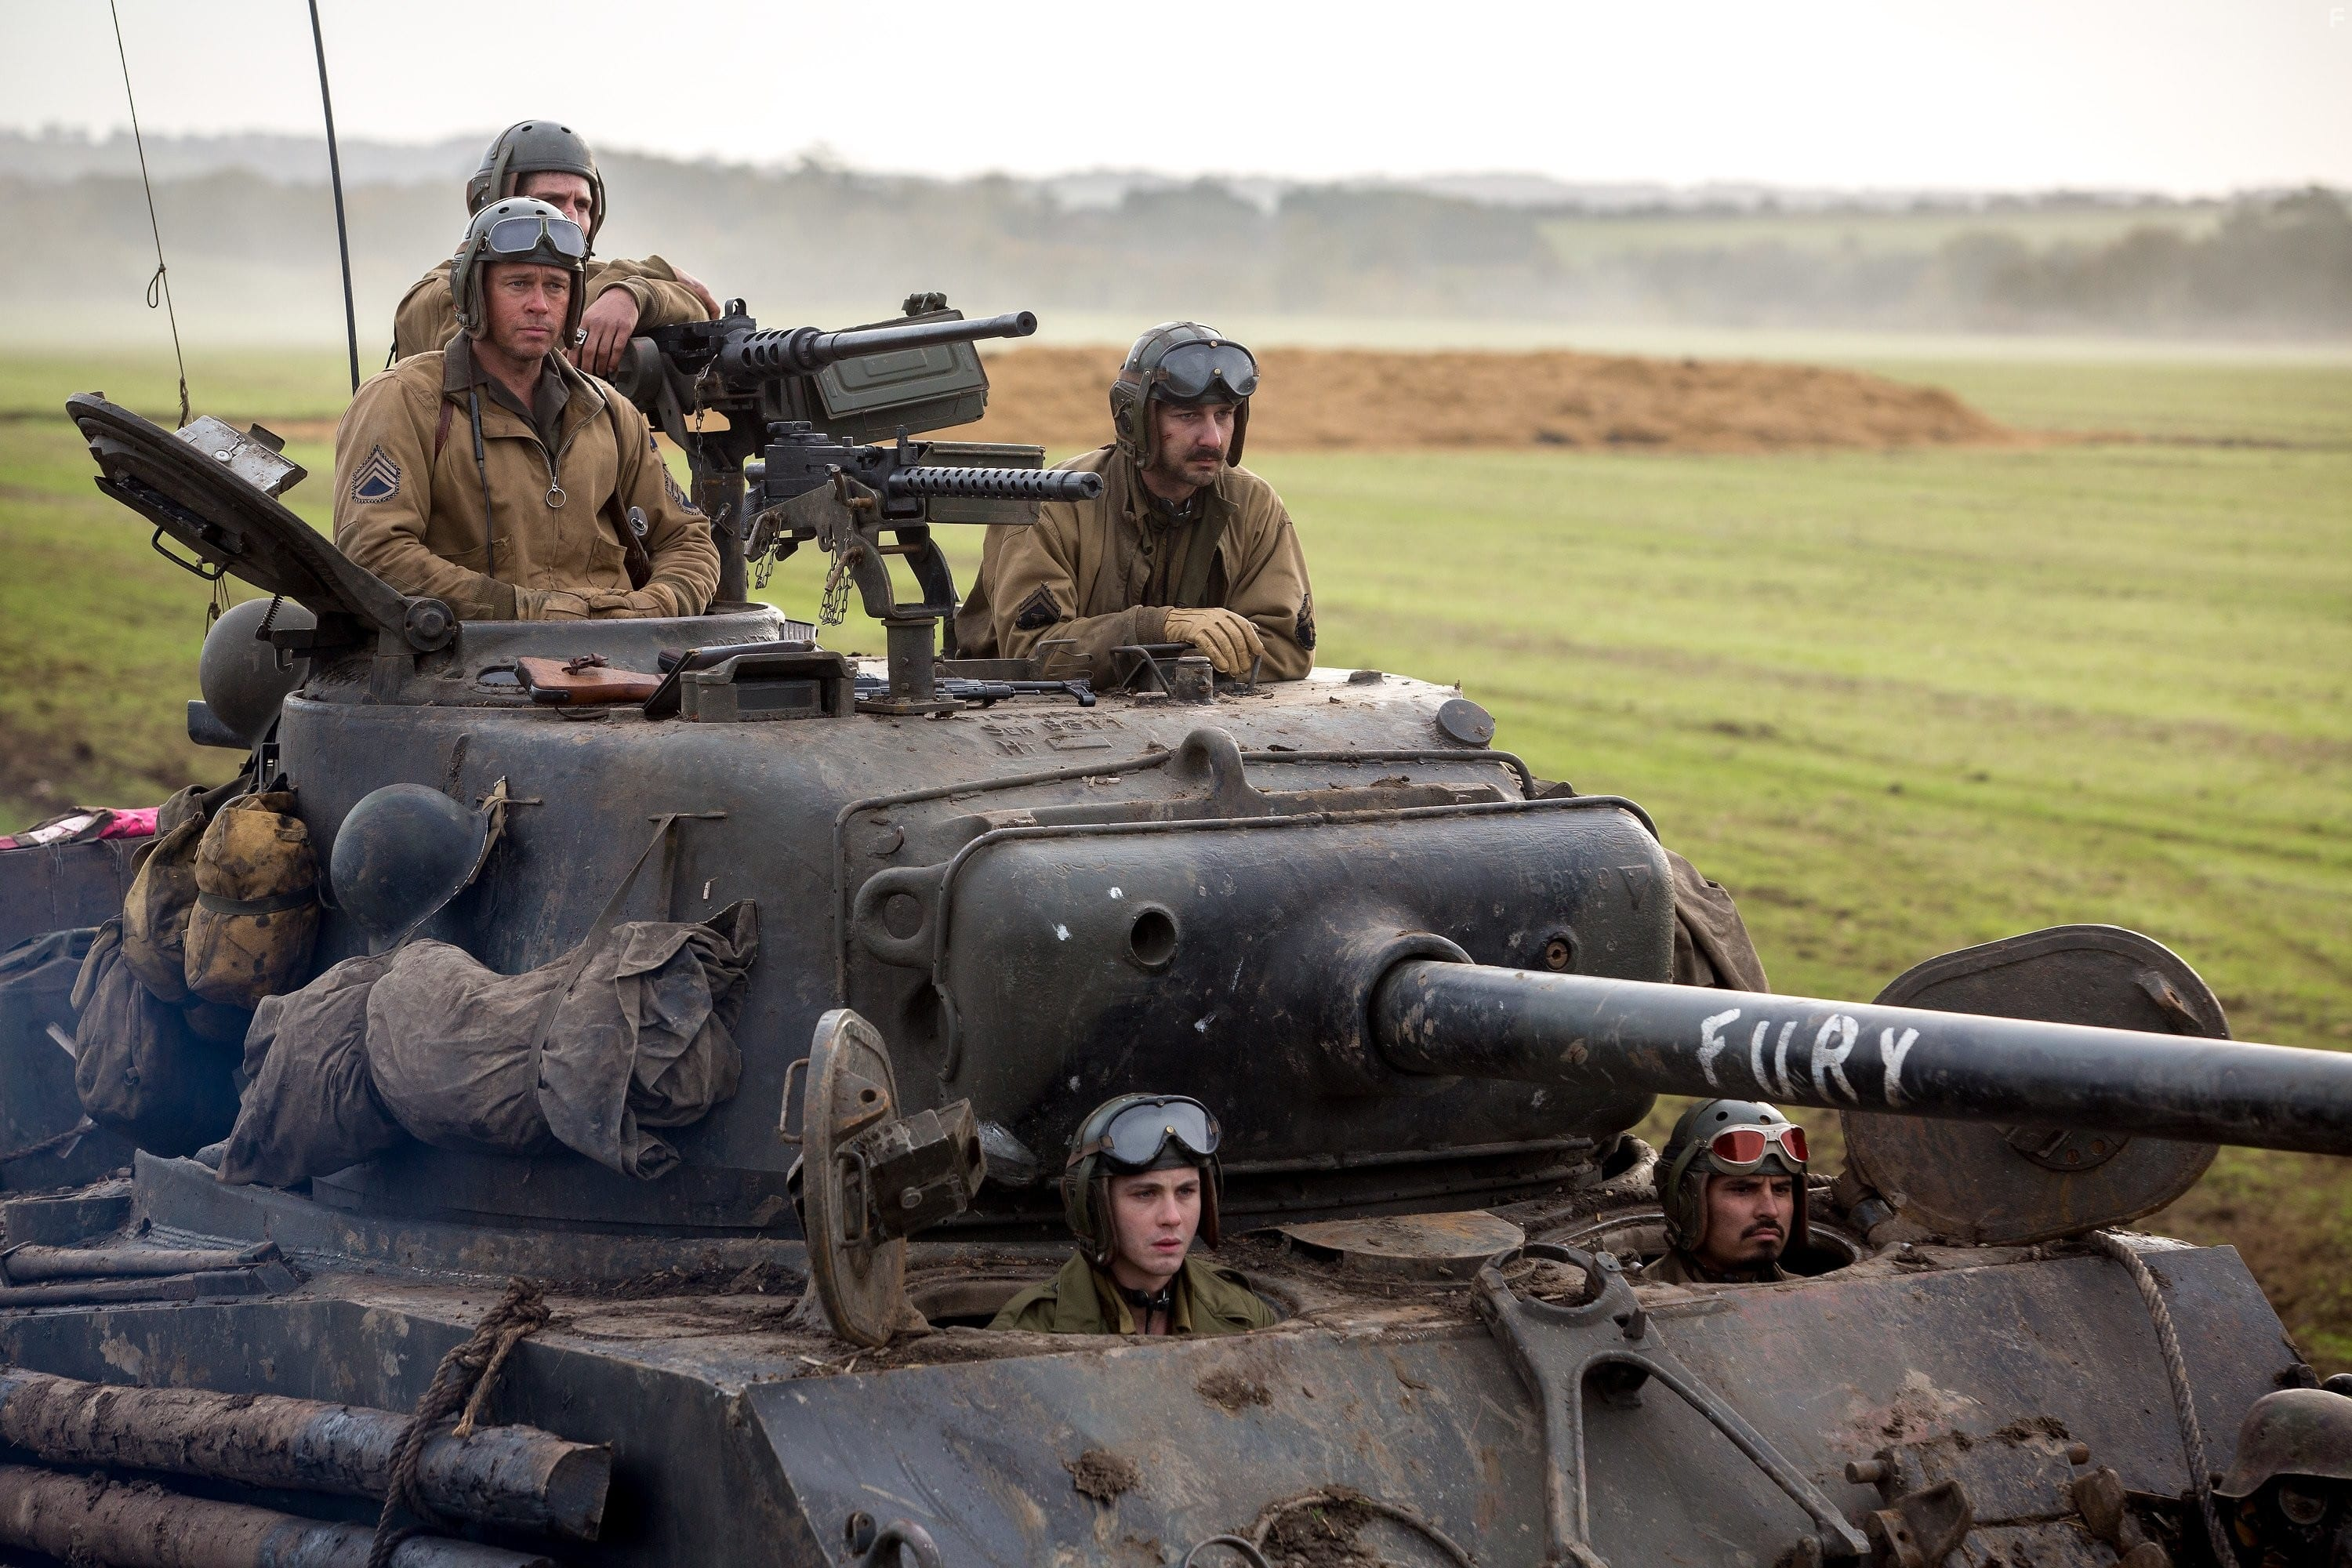 Fury HD pictures